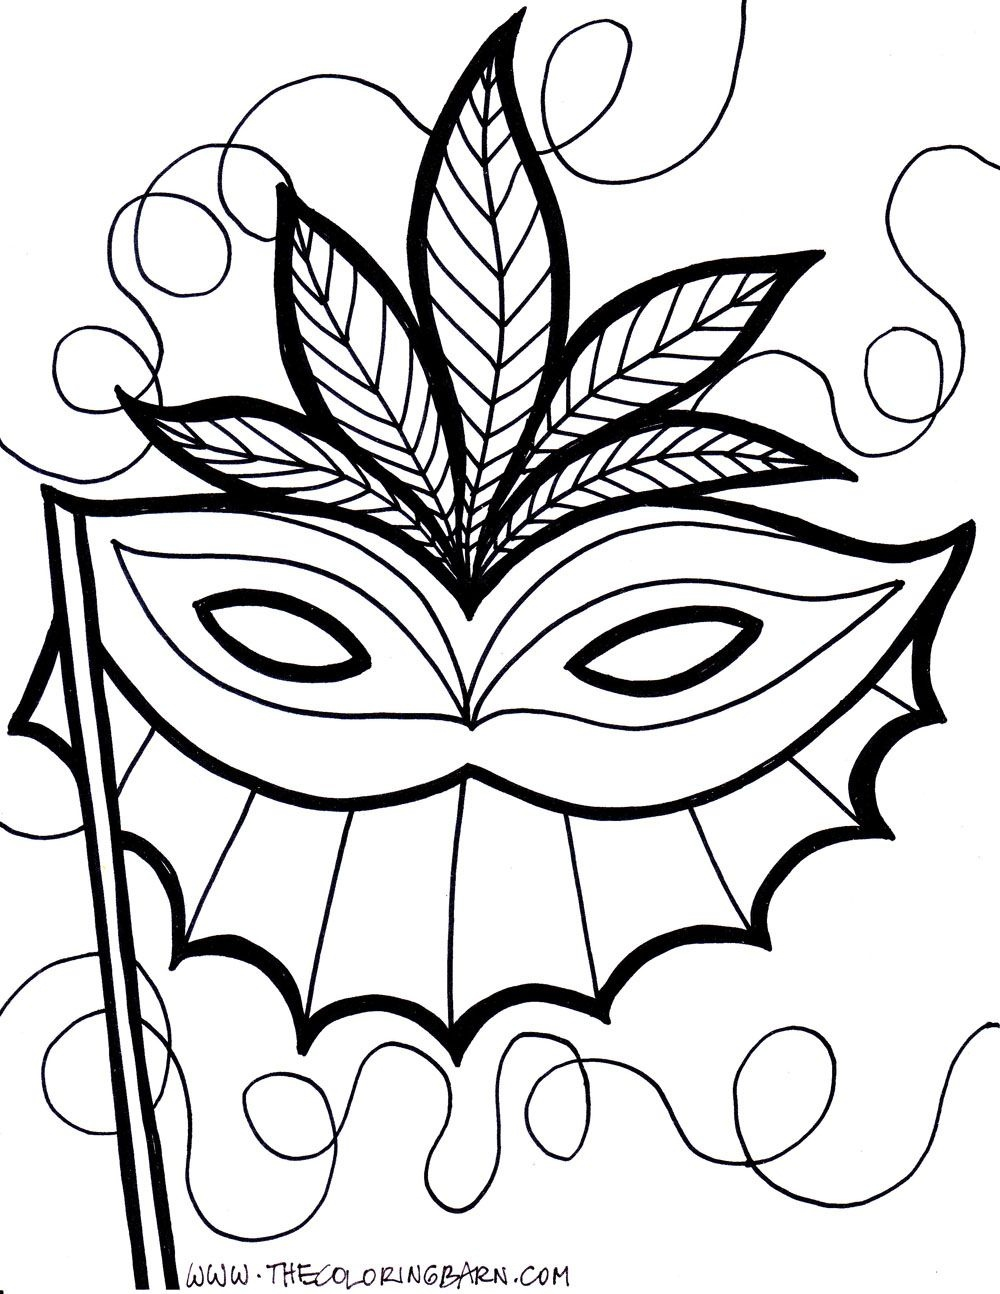 Pinelyssanda Desertsong On Embroidery Inspiration | Mardi Gras - Mardi Gras Coloring Pages Free Printable